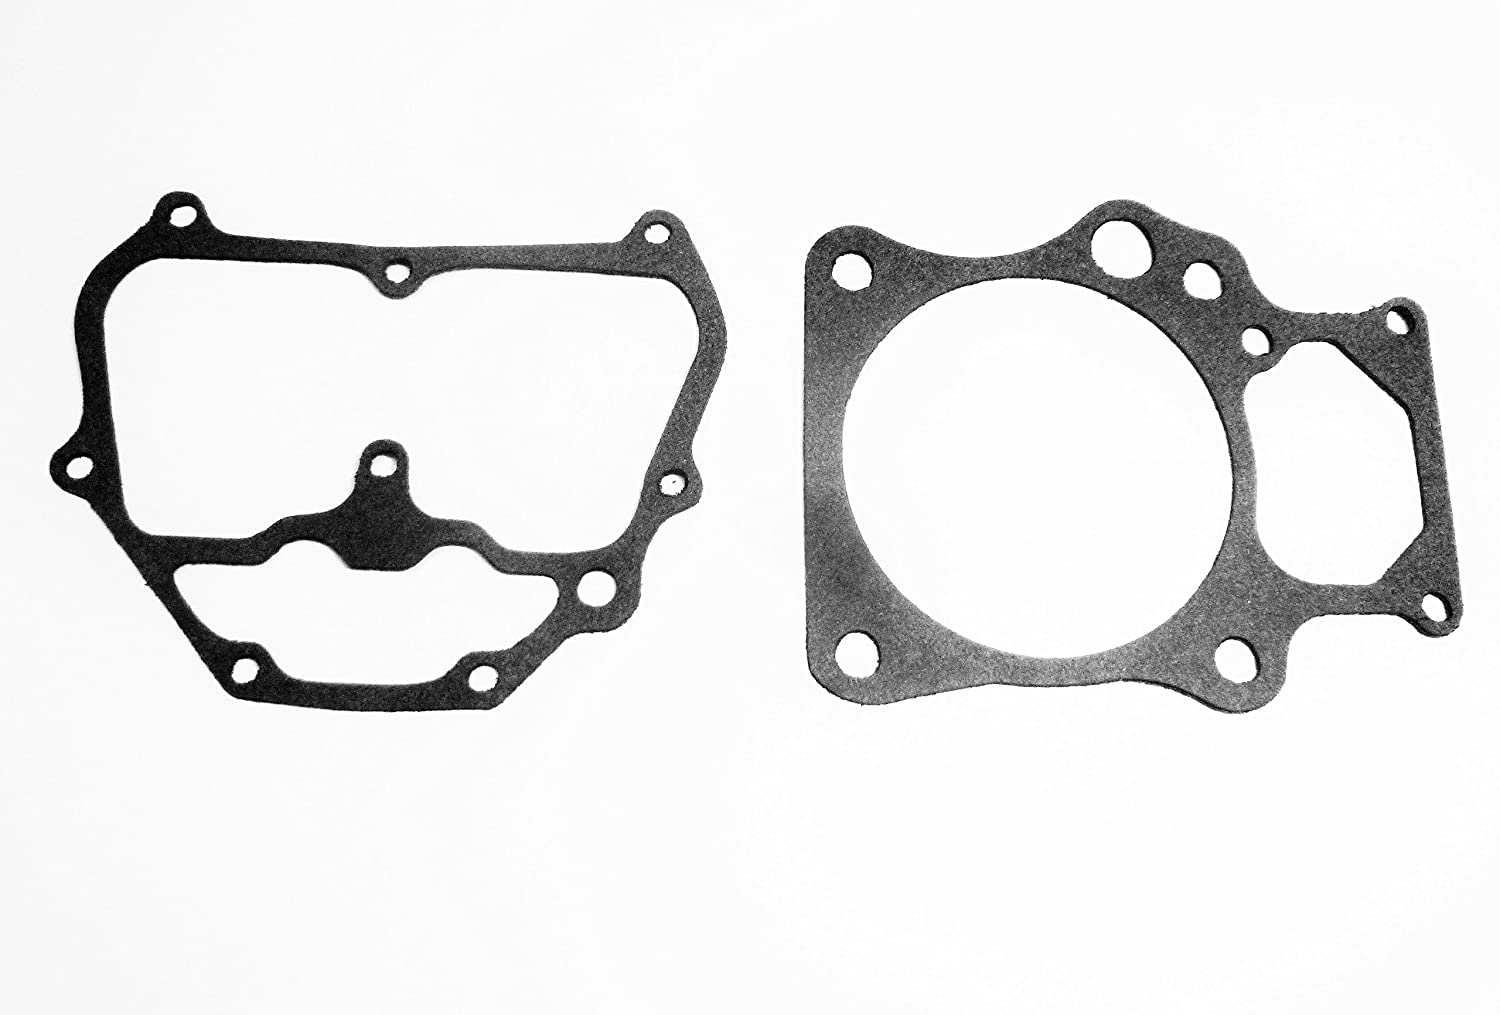 MG 3301041-2 Valve Cover Cylinder Base Gasket for Honda XR600R XR 600 R